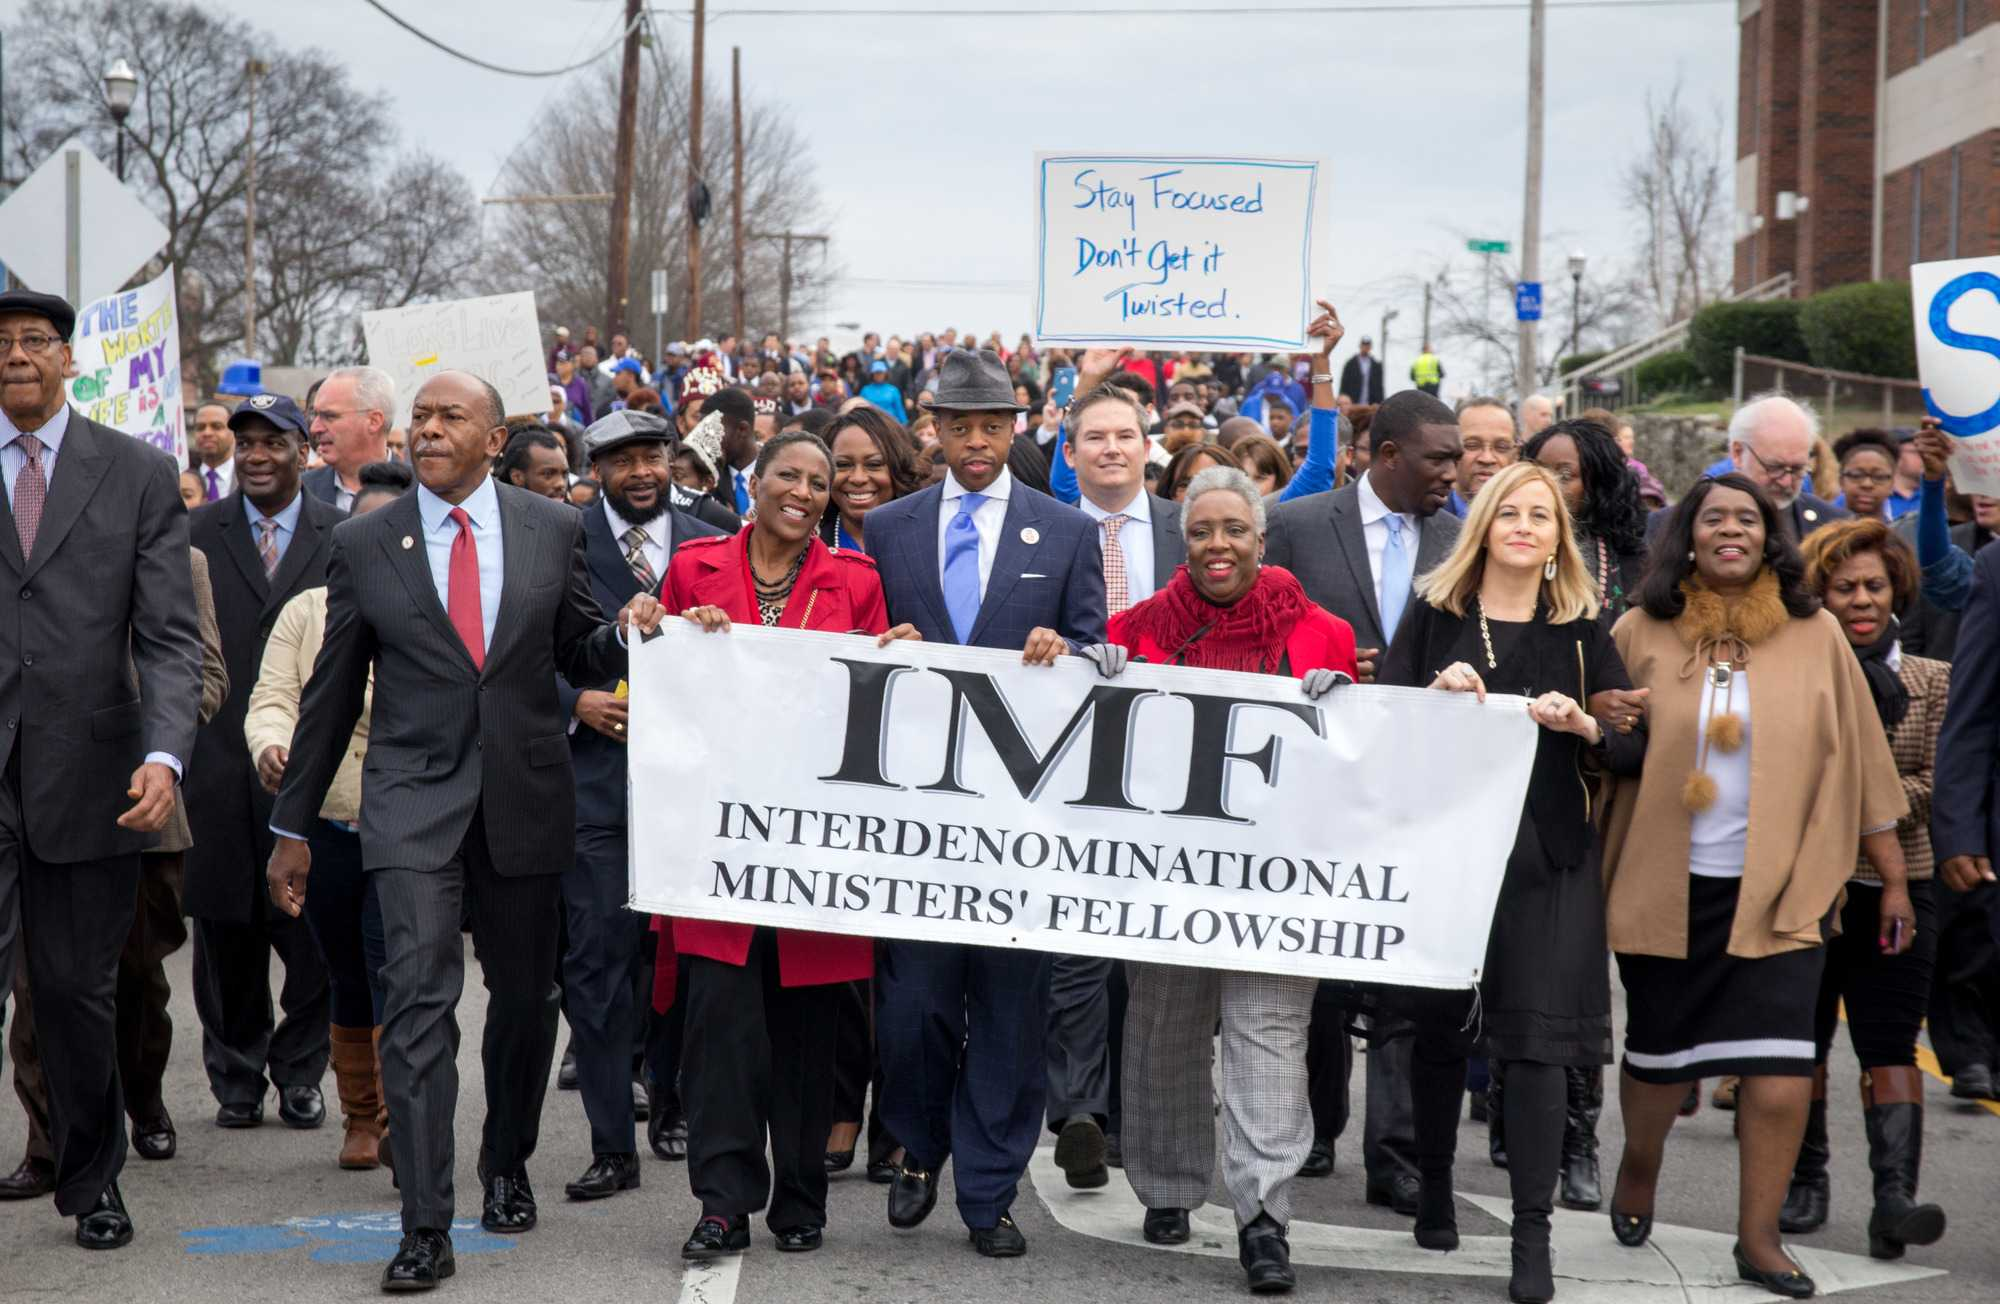 January 16th, 2017 – Nashville citizens, local leaders, and Mayor Megan Barry gather to celebrate the life of Rev. Dr. Martin Luther King Jr. at the annual MLK Day March.